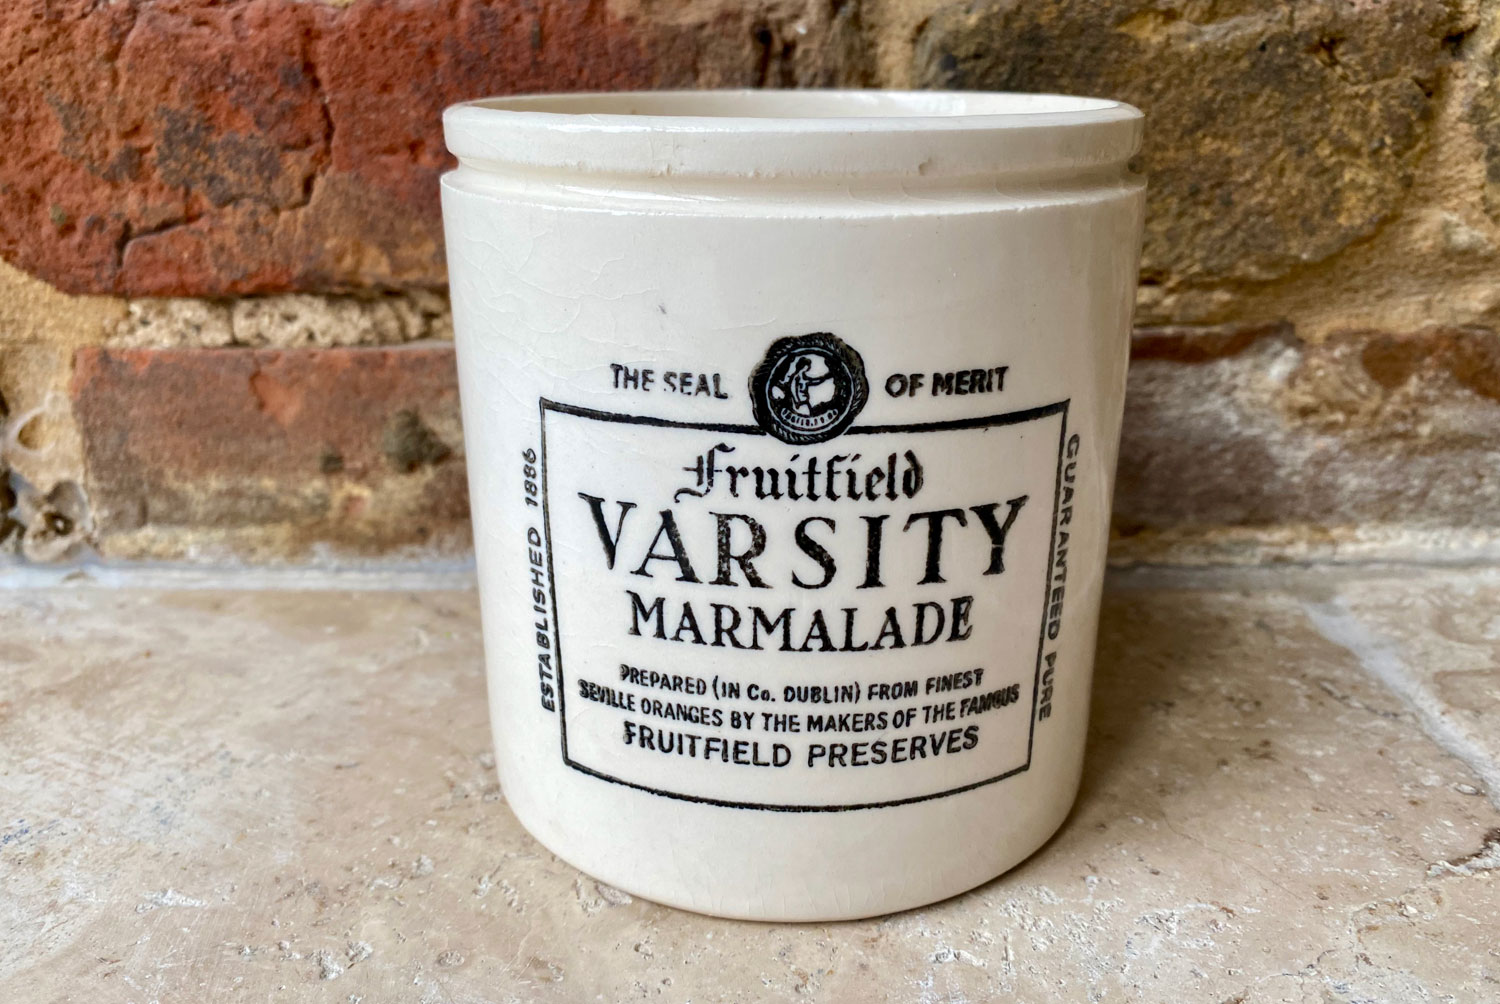 rare antique white ironstone fruitfield varsity large 2 pound irish marmalade advertising pot